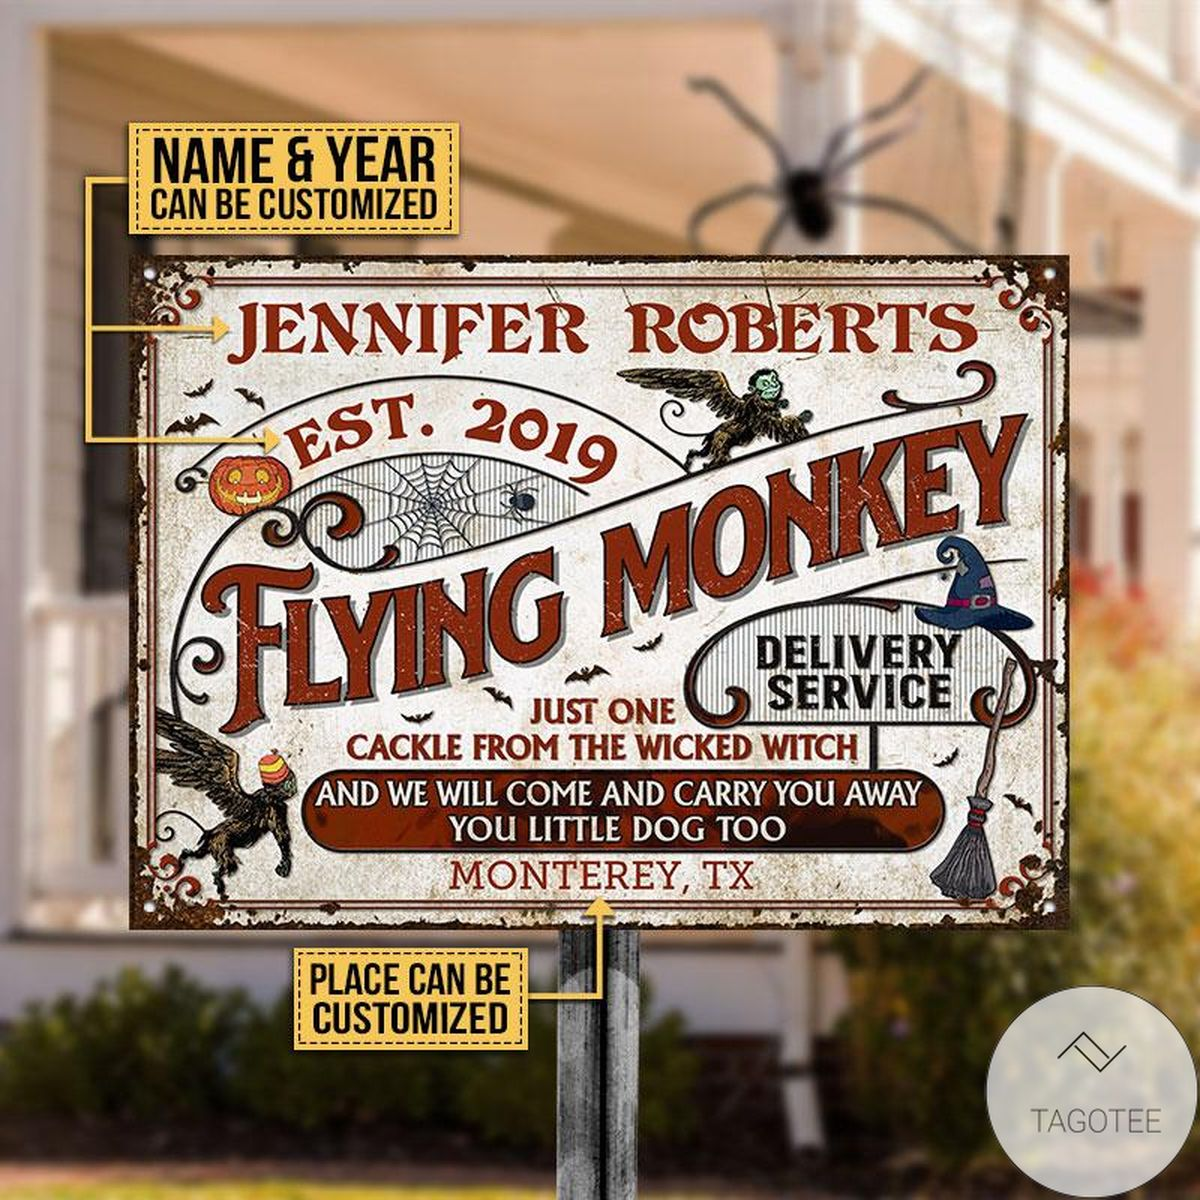 Awesome Personalized Witch Flying Monkey Delivery Service Classic Metal Signs